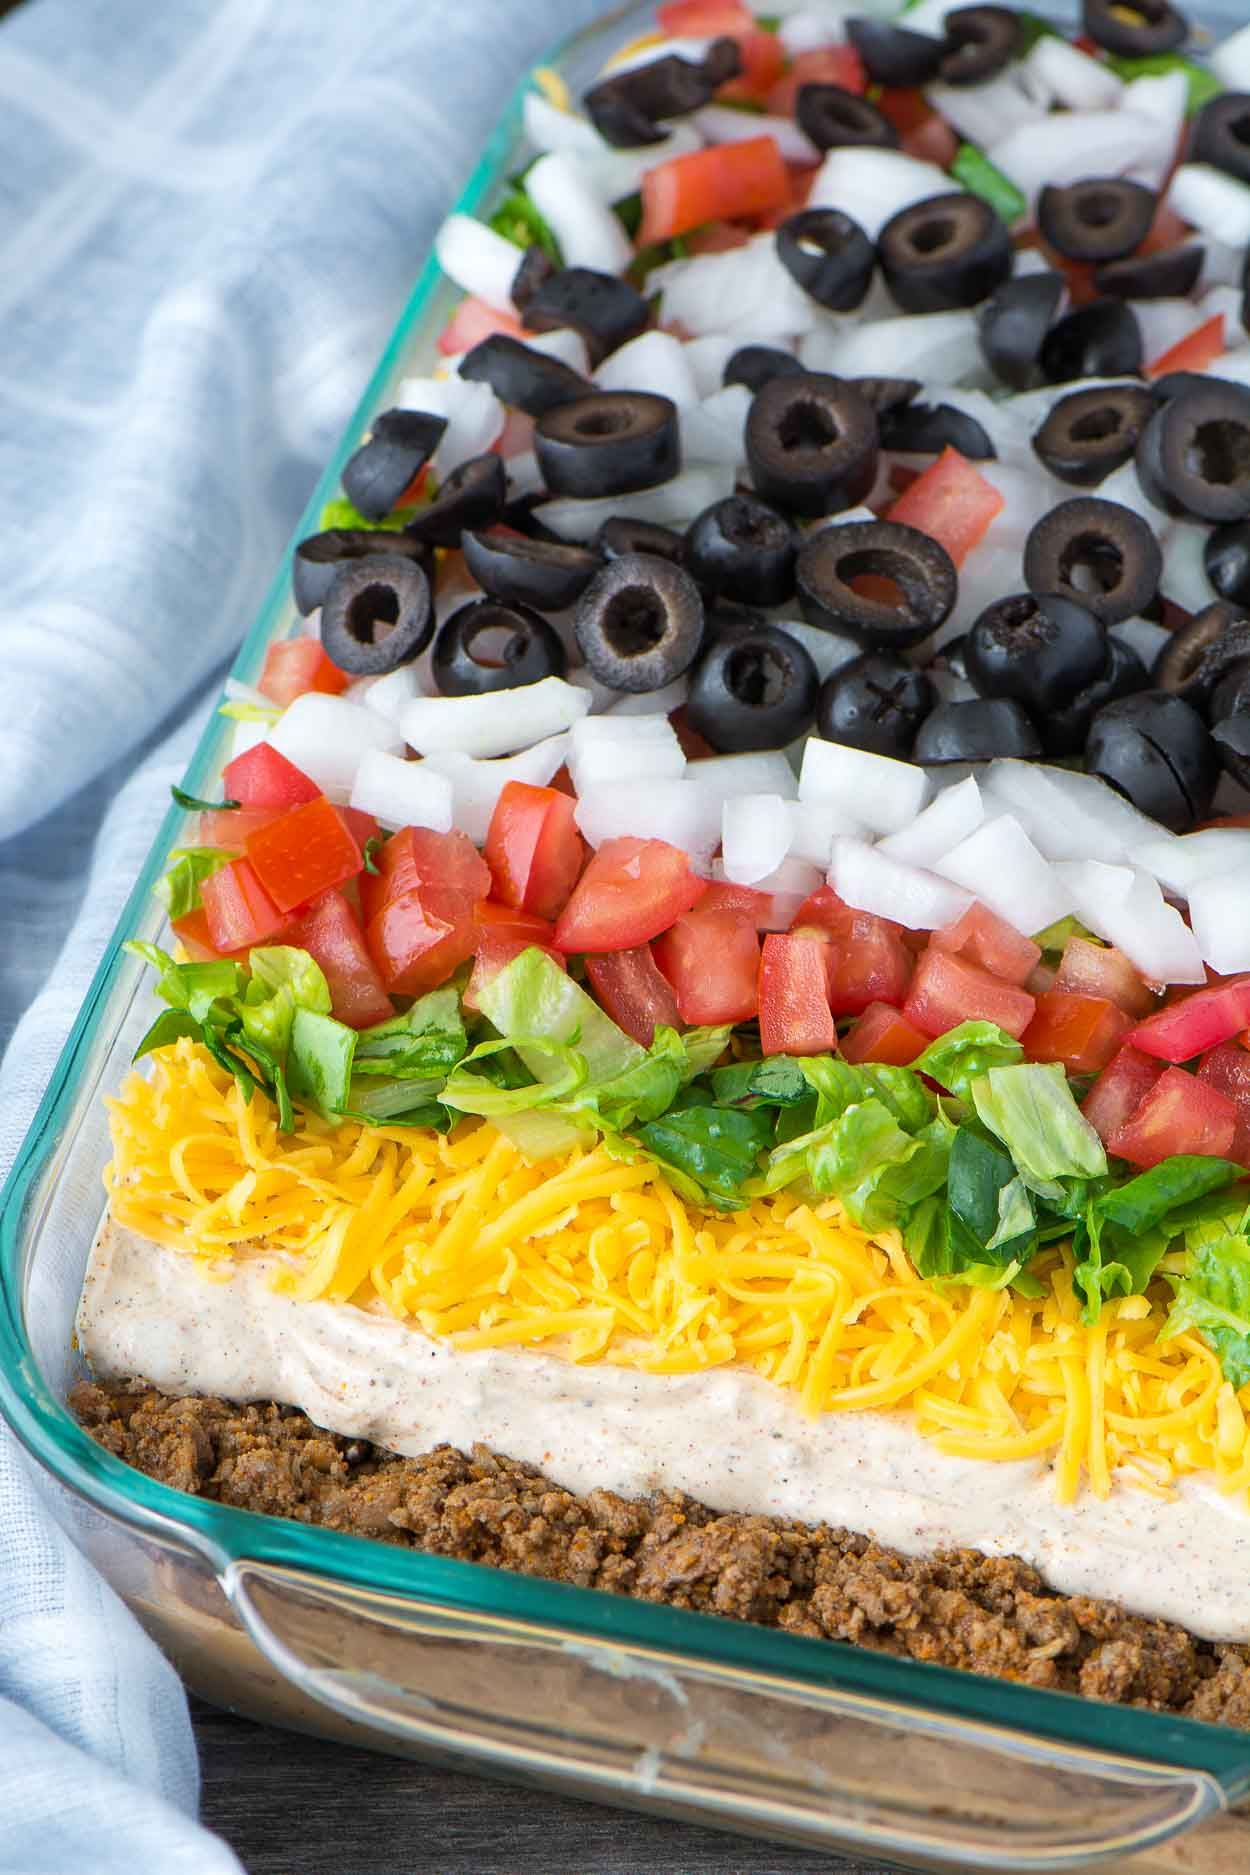 How To Make The Best 7 Layer Dip Simple Revisions Recipe Layered Dip Recipes Layered Taco Dip Appetizer Recipes